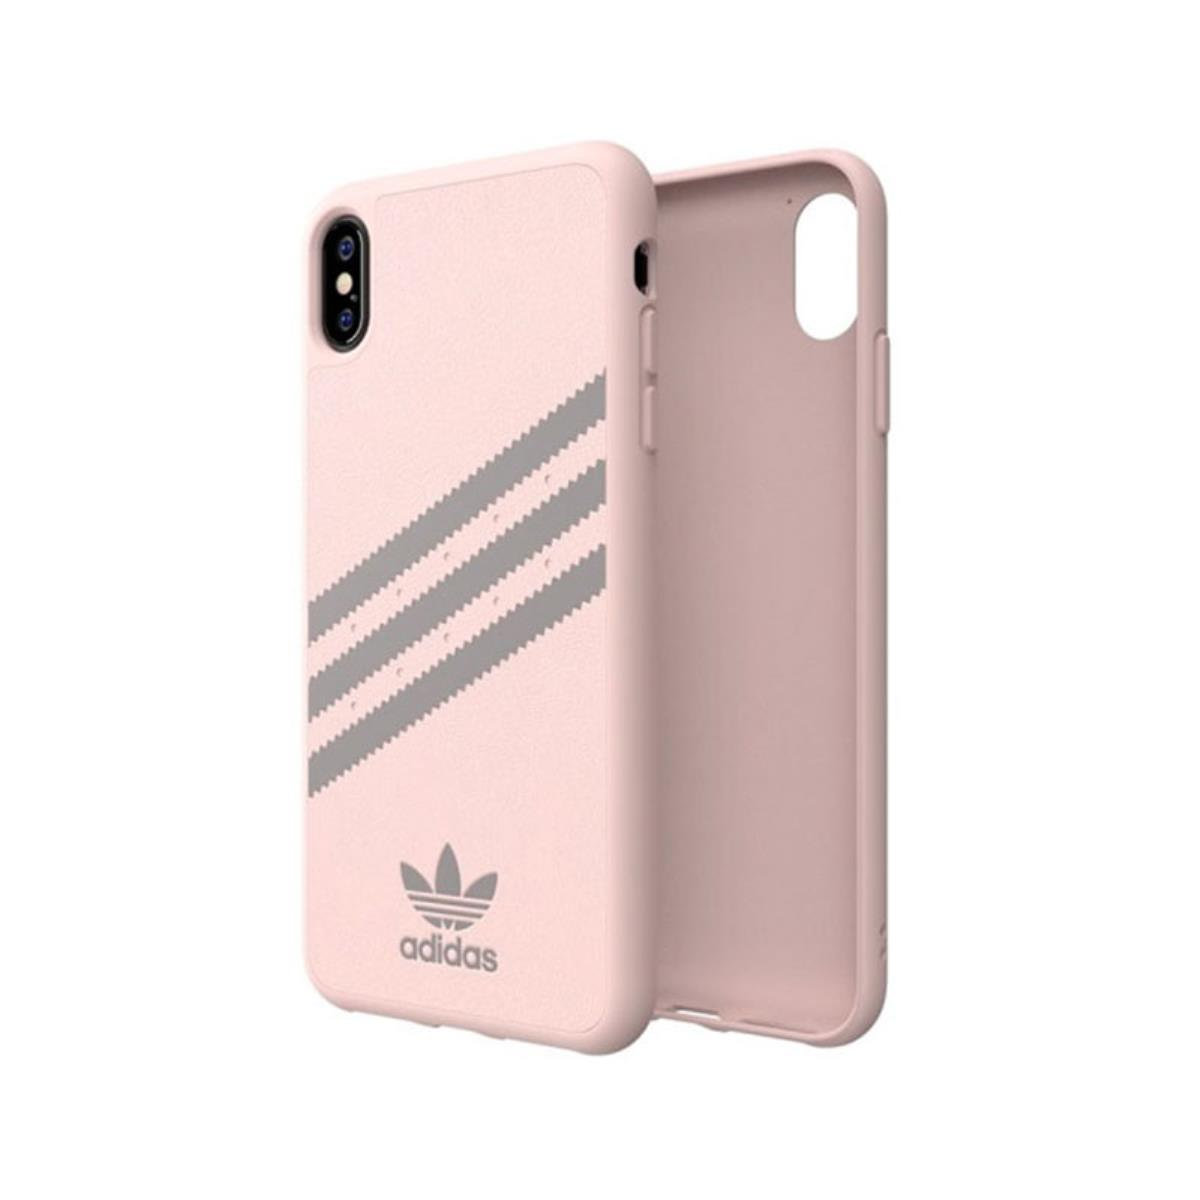 99c04dc2 Adidas Gazelle FW18 3 Protection Case for Iphone XS MAX Pink